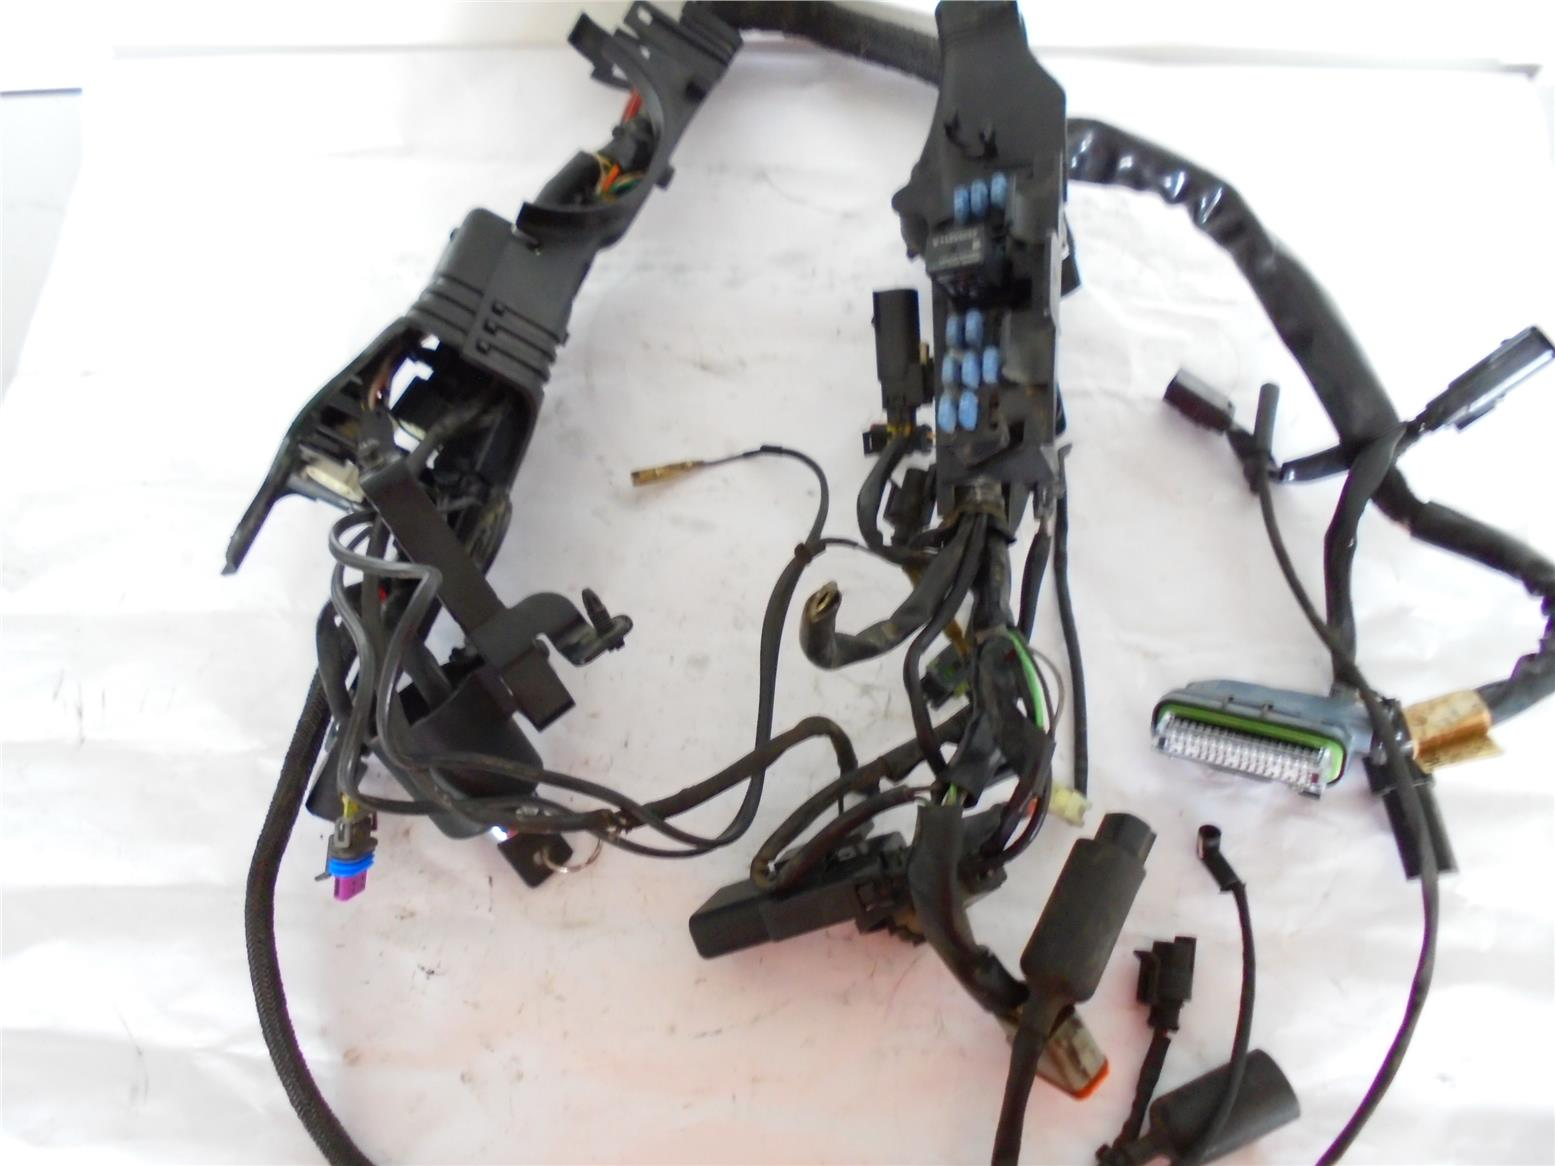 hight resolution of sportster main wiring harness wiring diagram compilation harley davidson sportster wiring harness sportster main wiring harness